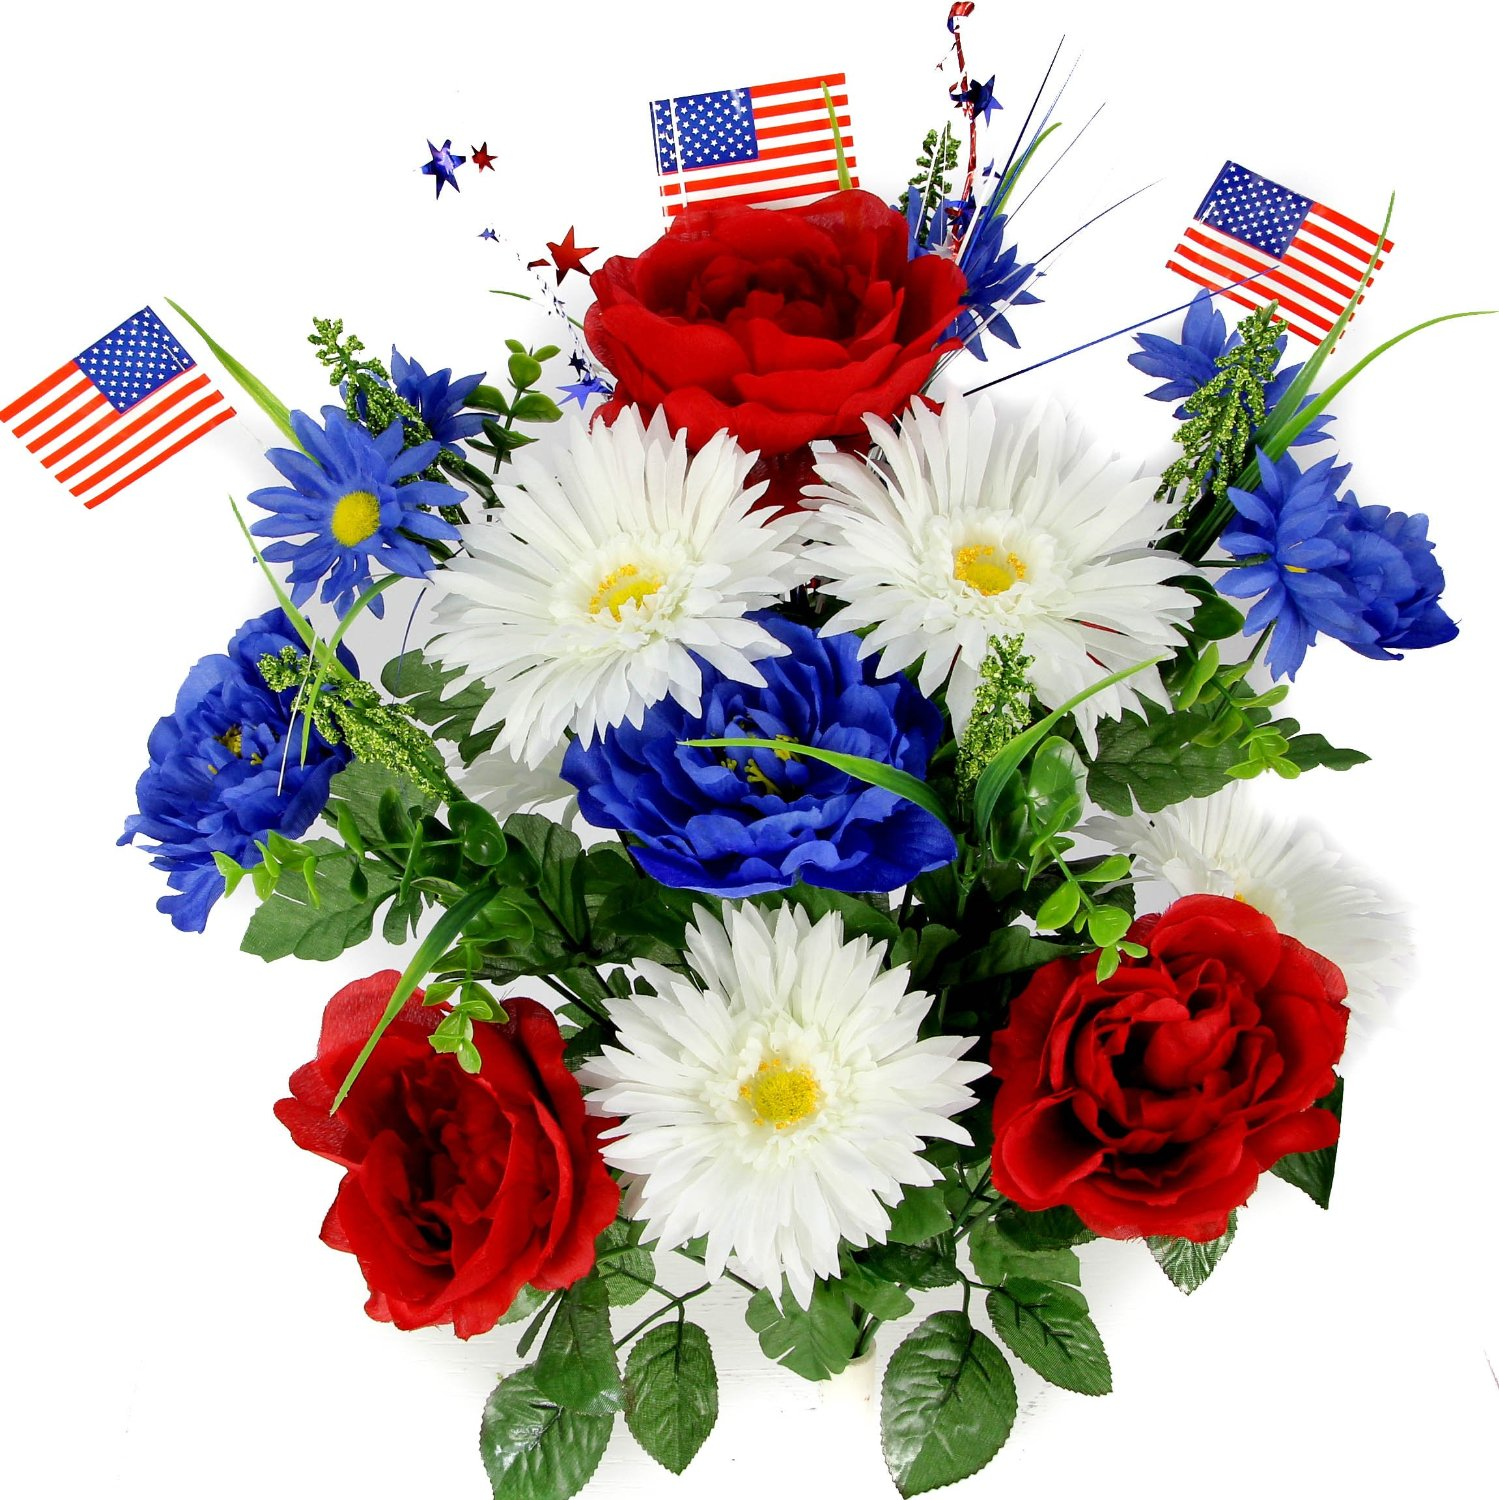 Cheap Red White Blue Flags Find Red White Blue Flags Deals On Line